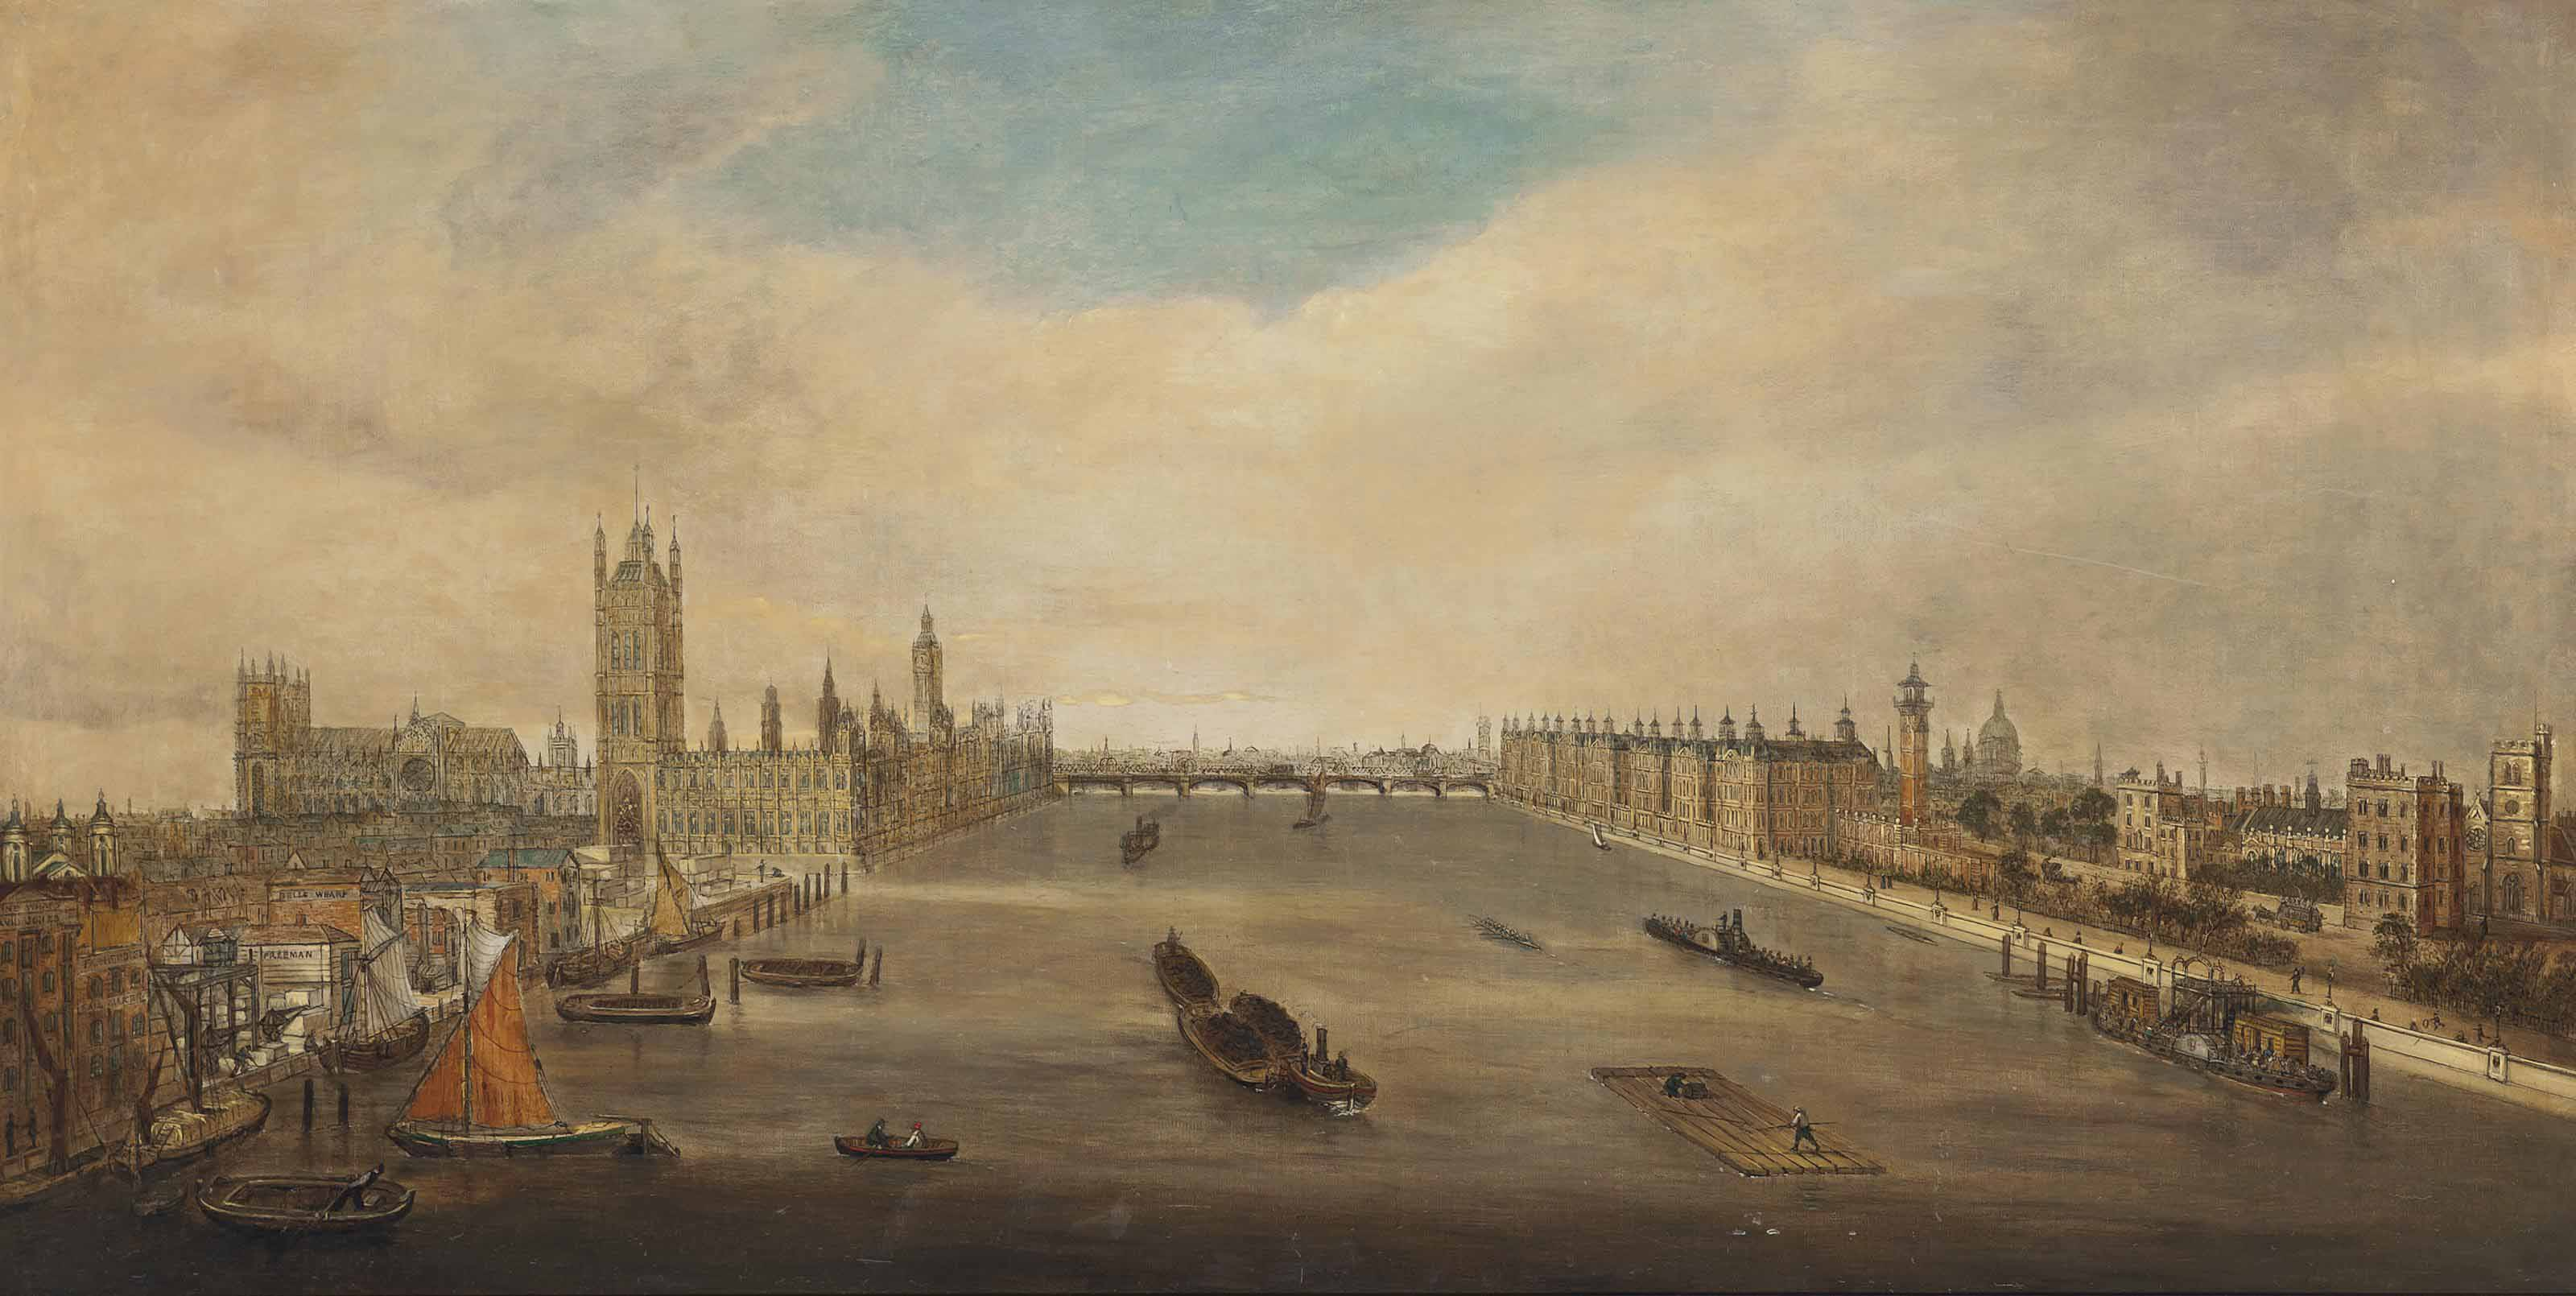 A view of the Thames towards Westminster Bridge with the Houses of Parliament and Lambeth Palace, shipping in the foreground